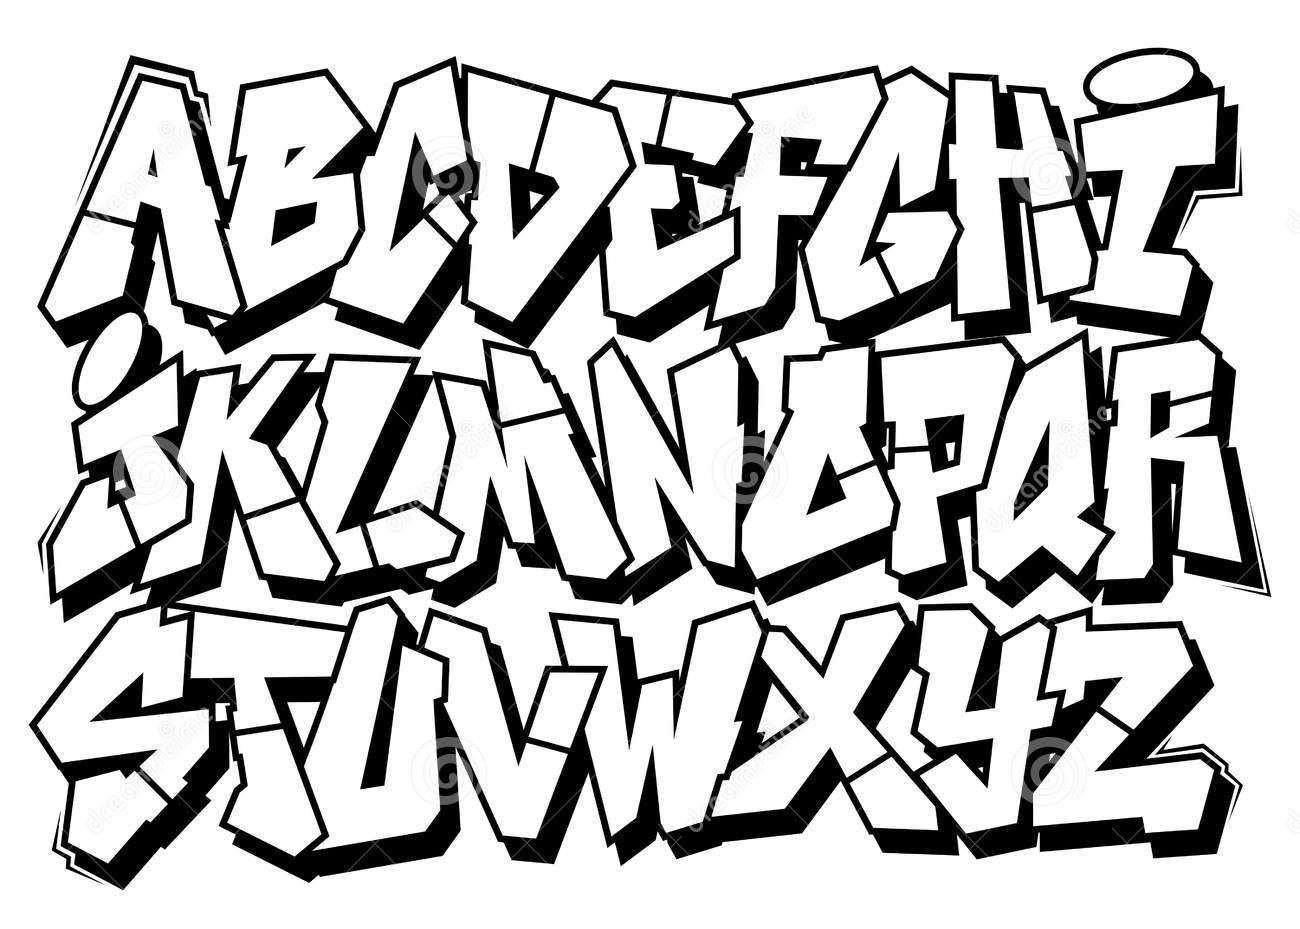 bildergebnis f r graffiti buchstaben comicschrift pinterest graffiti buchstaben graffiti. Black Bedroom Furniture Sets. Home Design Ideas